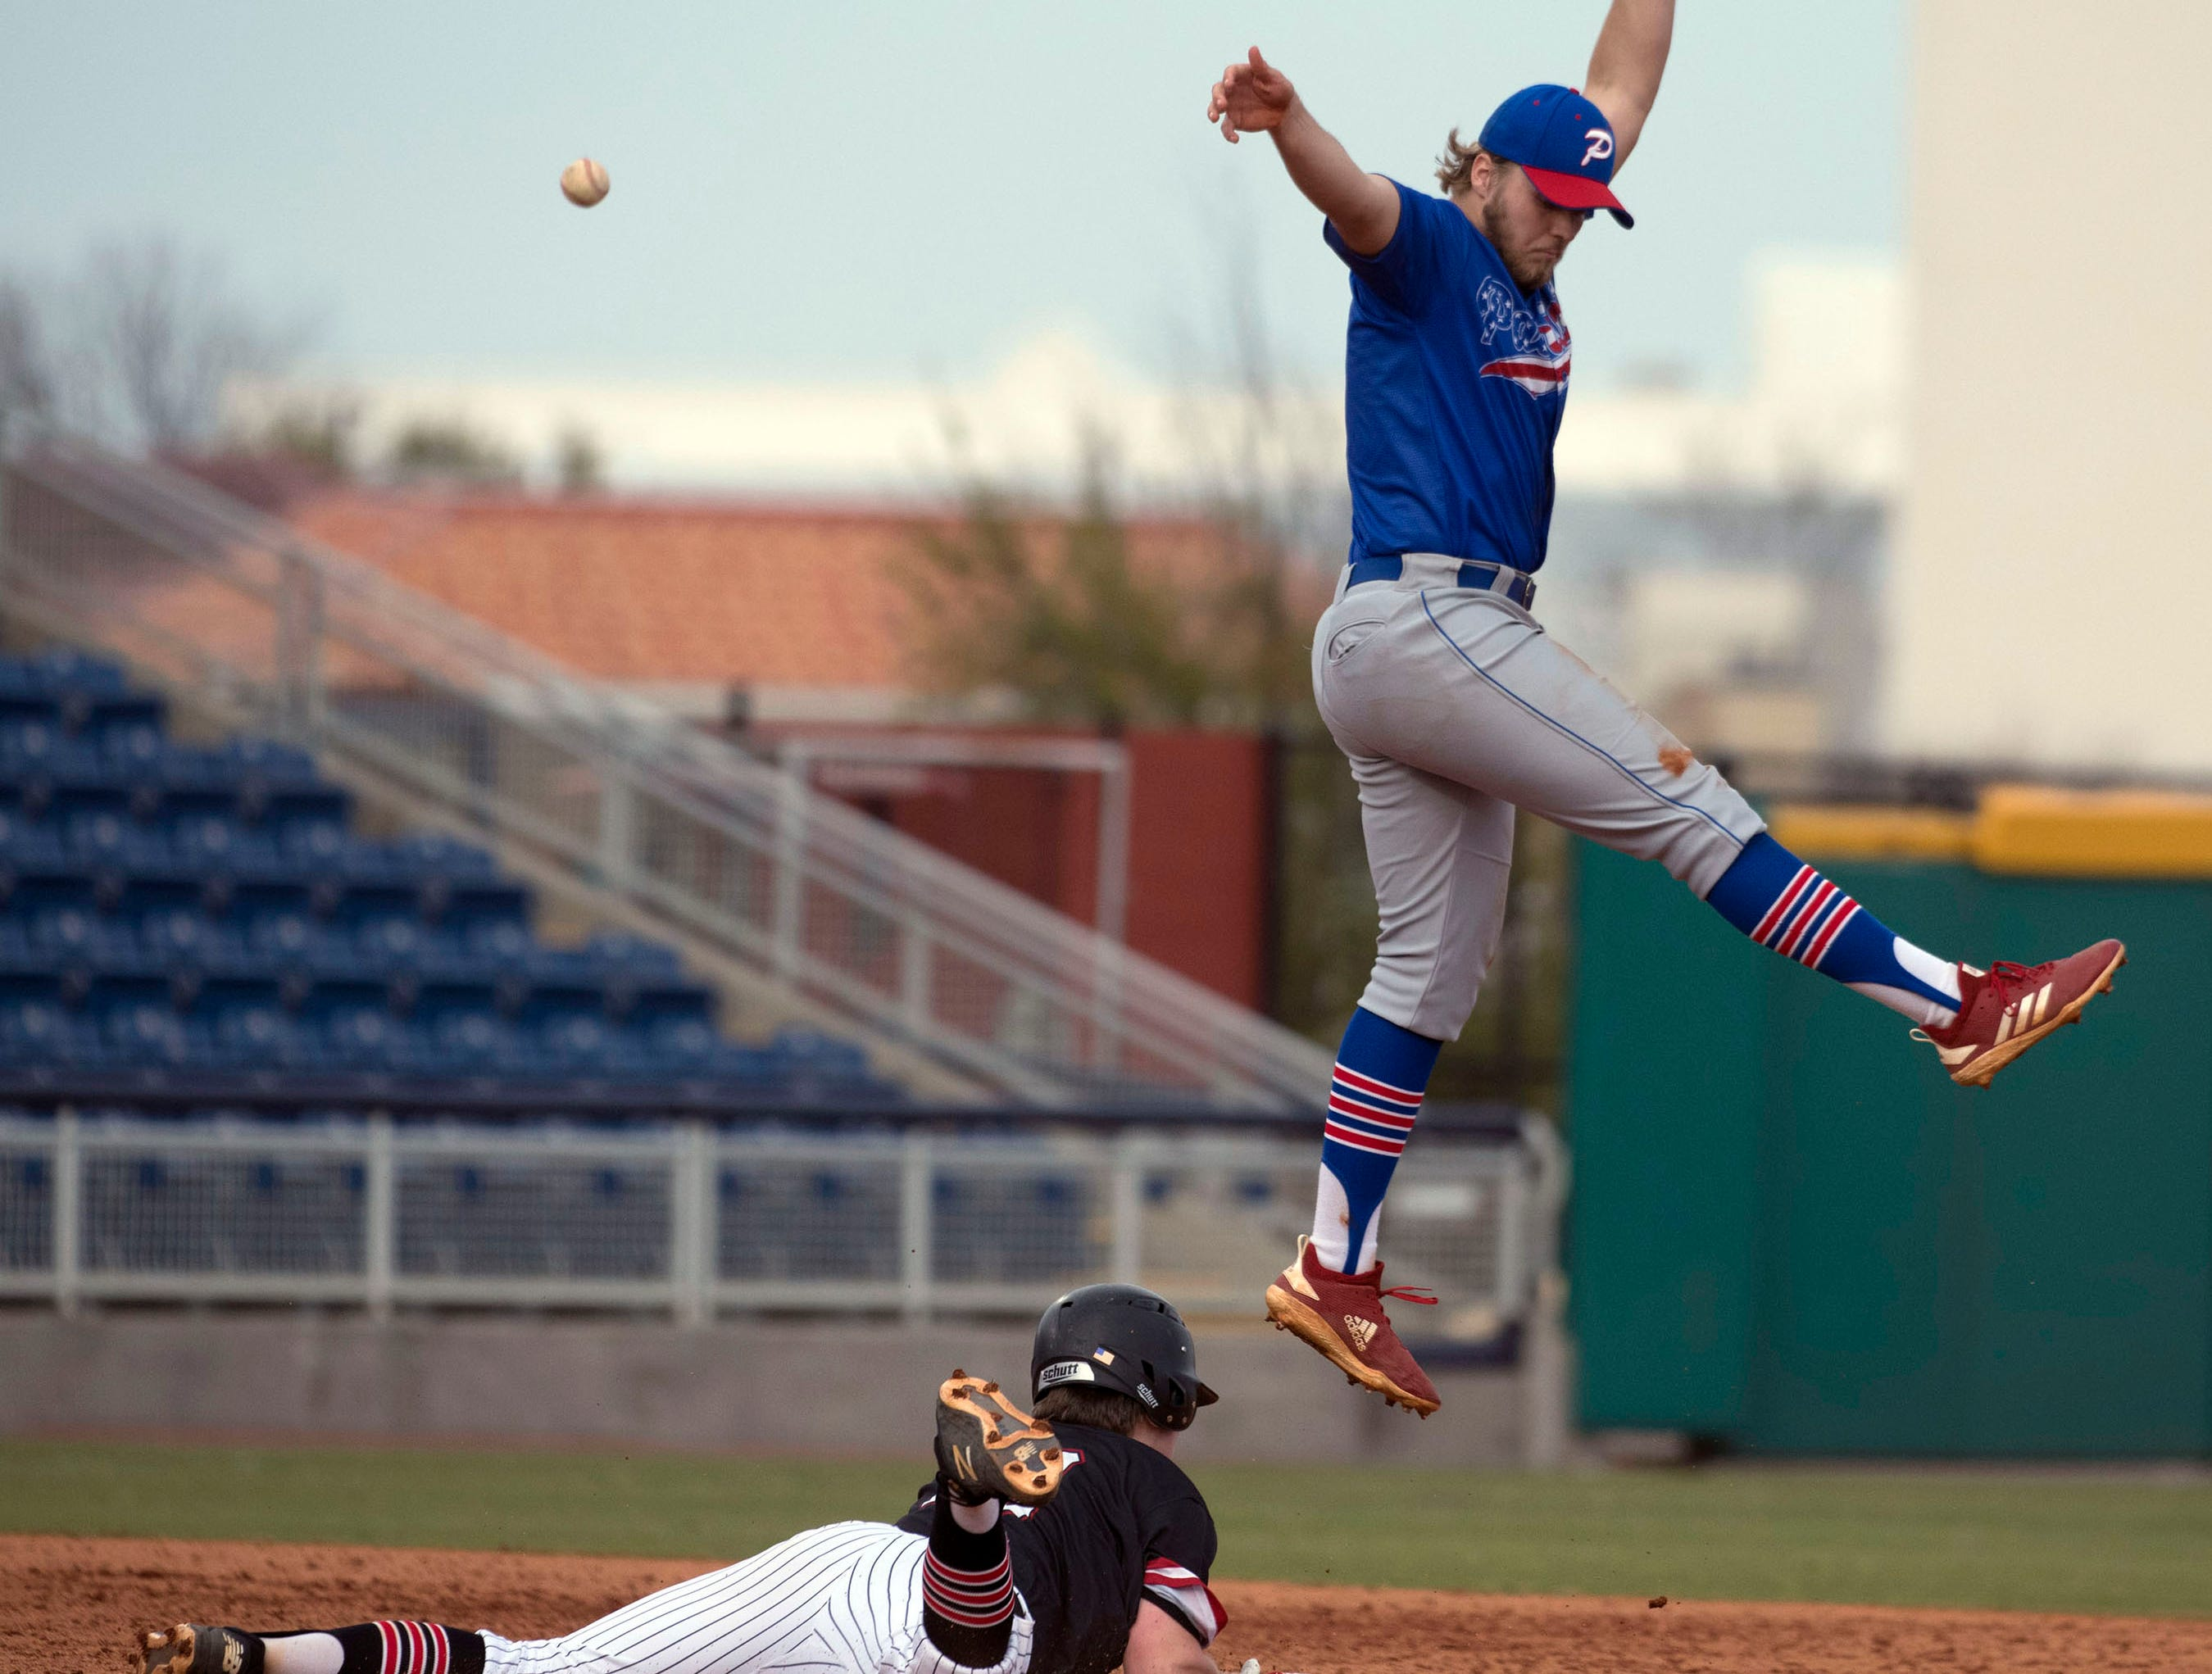 West Florida High School's Will Hackett,(No. 13) dives headfirst into second base as Pace High School's Aidan Gilroy, (No. 6) tries to make a leaping catch during the Battle of the Bay tournament at Blue Wahoos stadium on Tuesday, March 12, 2019.